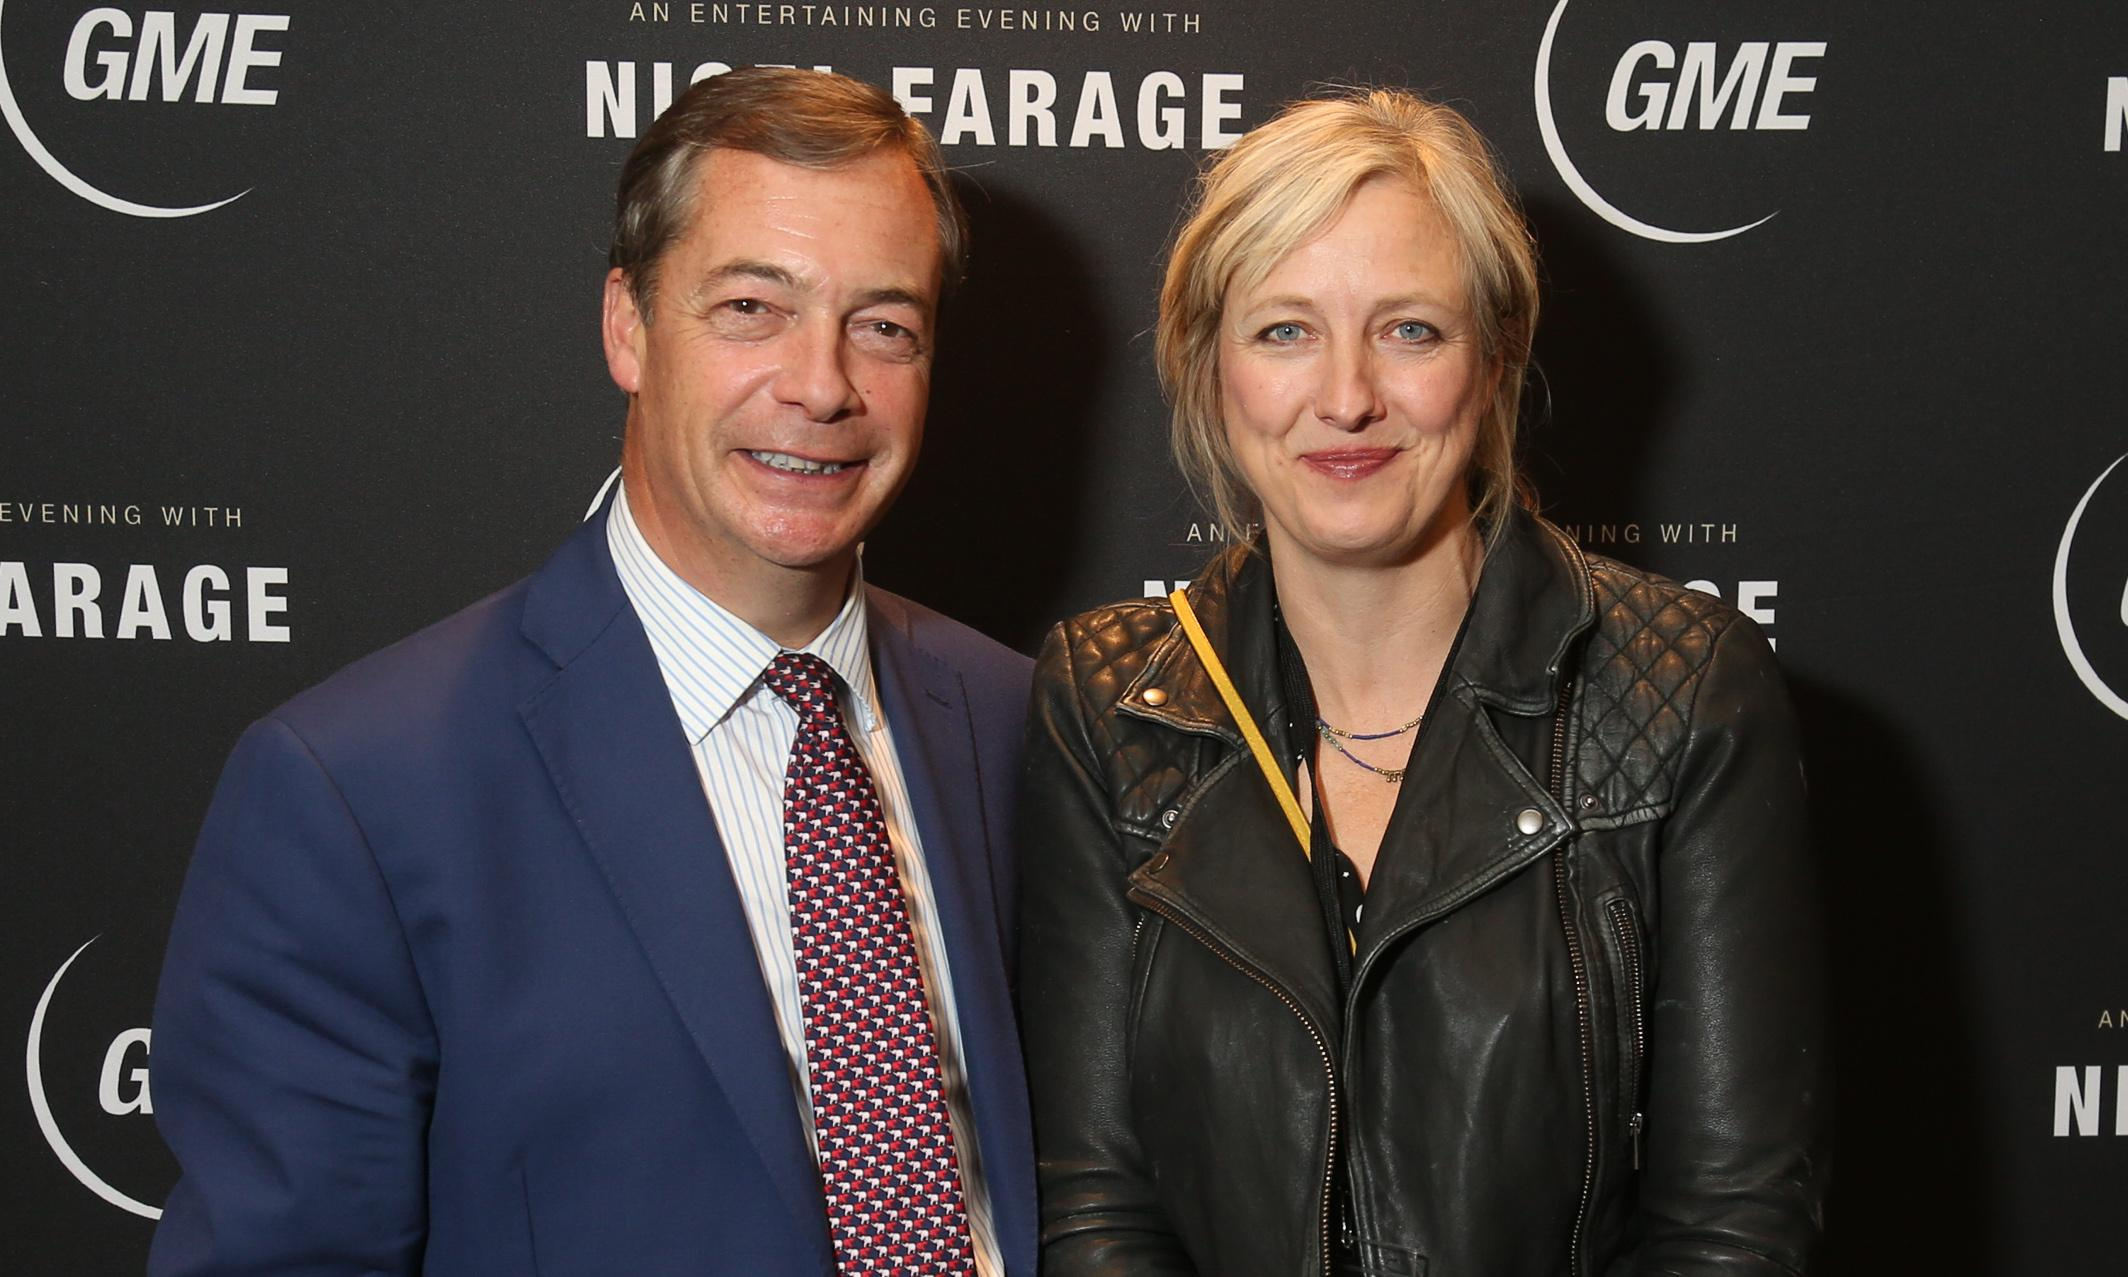 Who is the real Nigel Farage... and why won't he answer my questions?